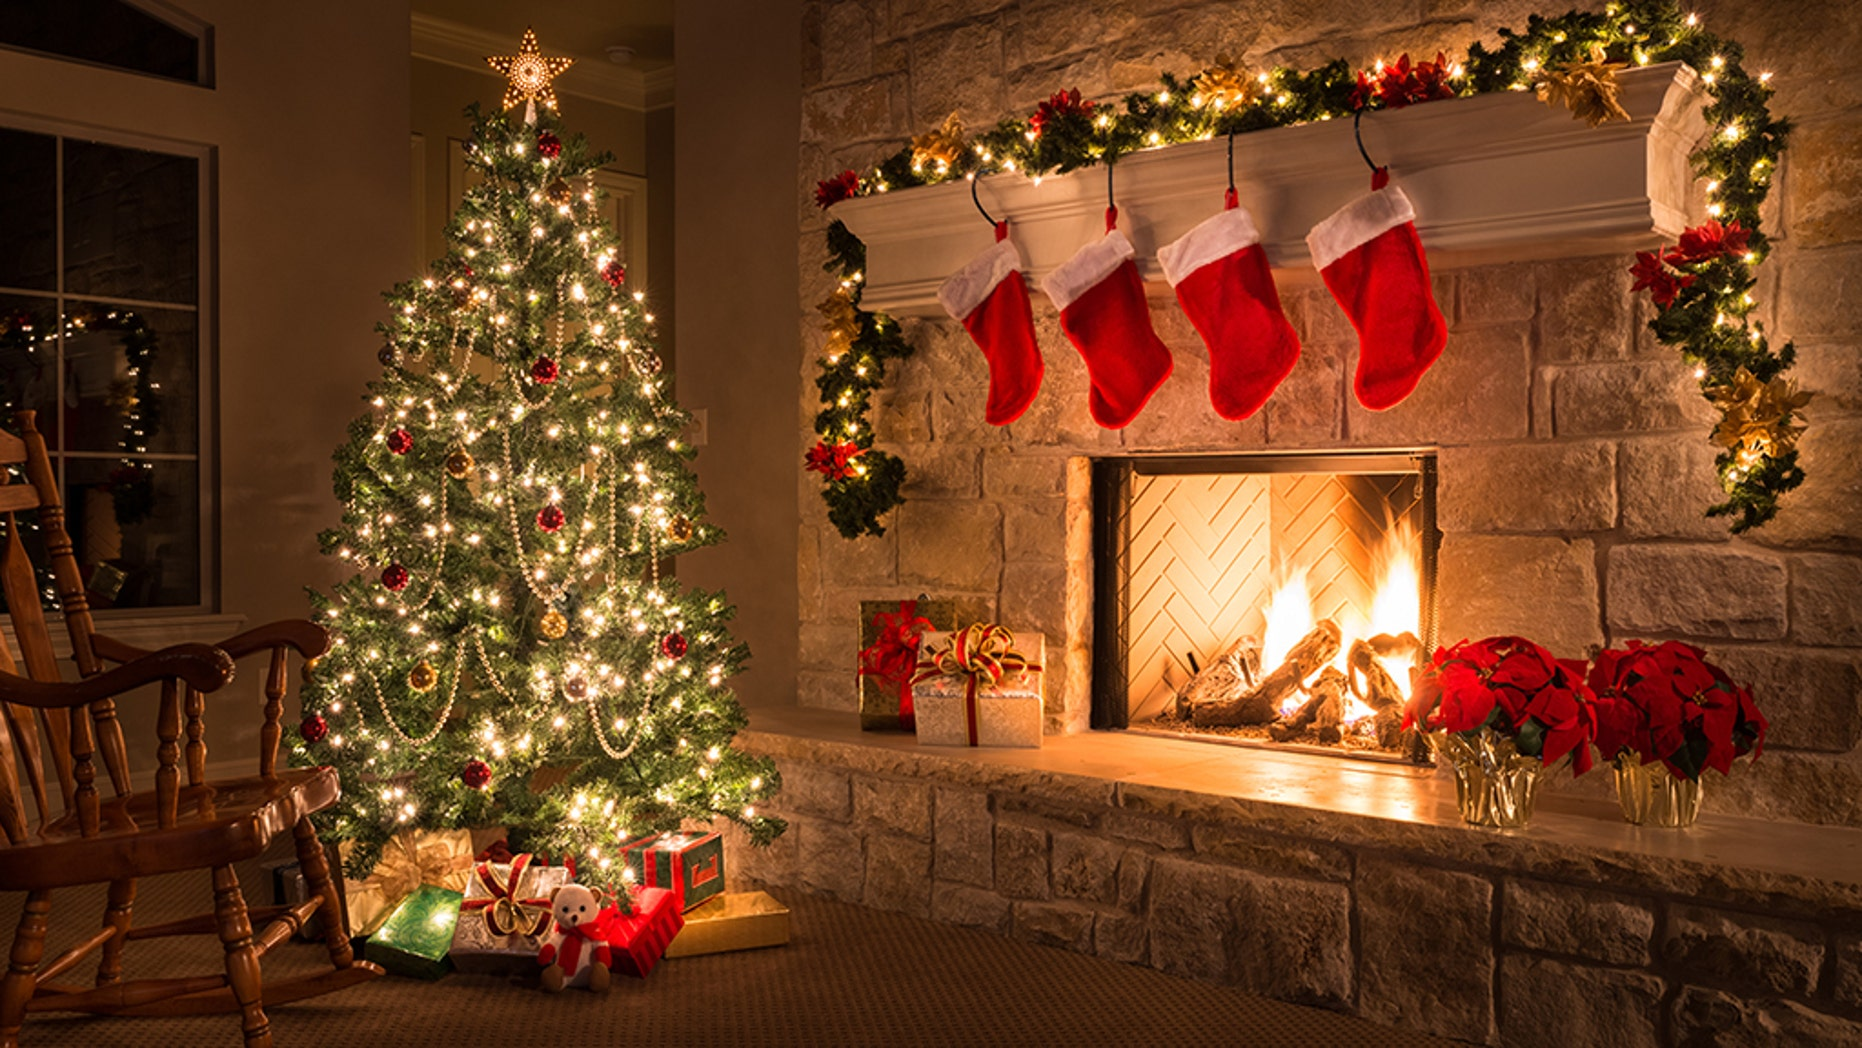 Are Christmas Trees A Fire Hazard Tips To Keep Your Home Safe From